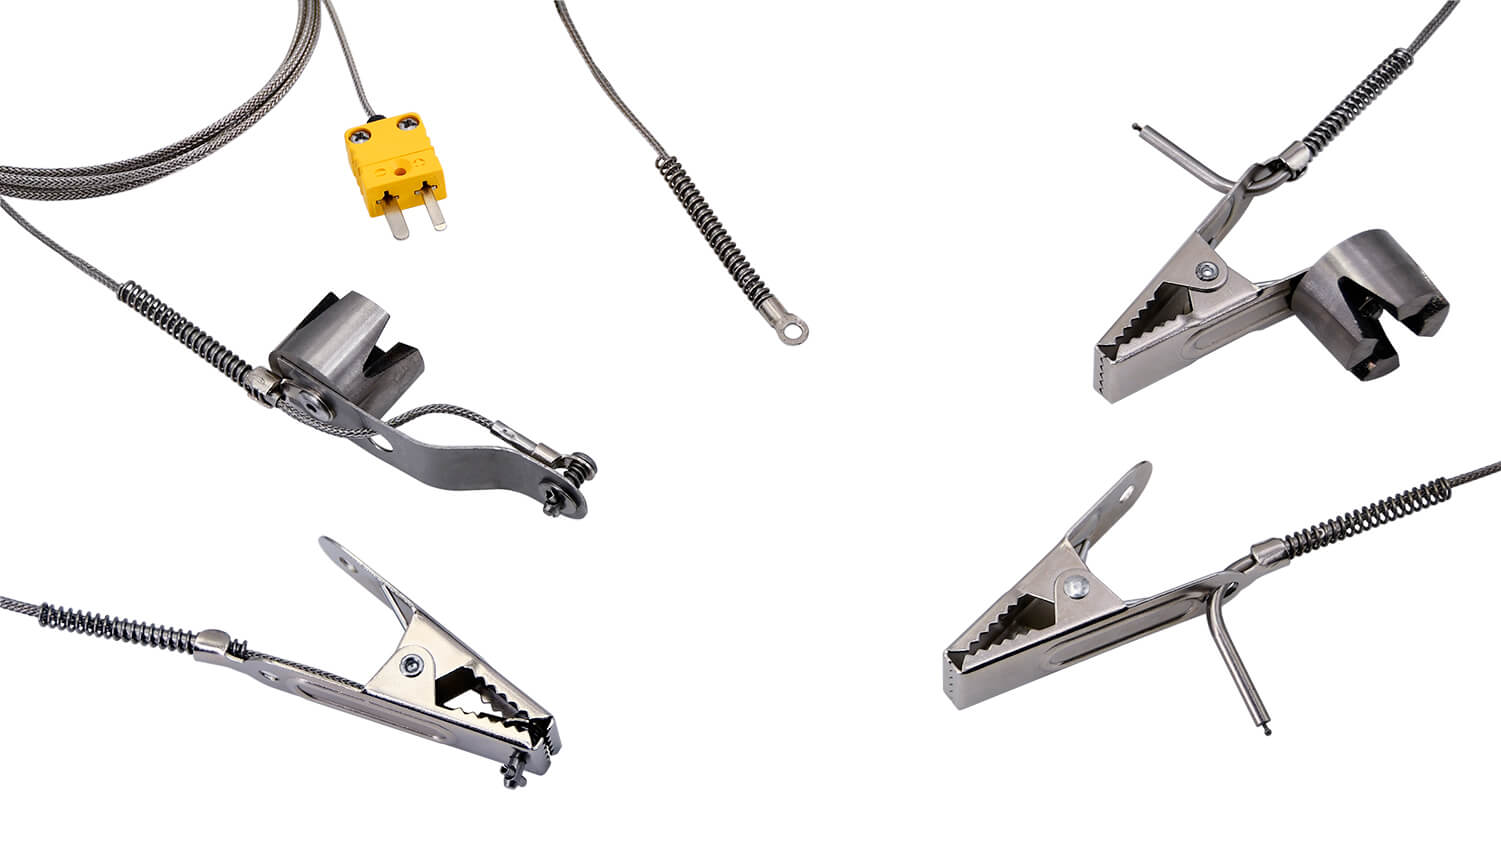 Image showing the different types of k-type Temperature probes offered for the PosiTest OTL. Clockwise from left to right reads the following: Clamp Surface Probe, Magnetic Surface Probe, Washer Surface Probe, Magnetic Air Probe, Clamp Air Probe.